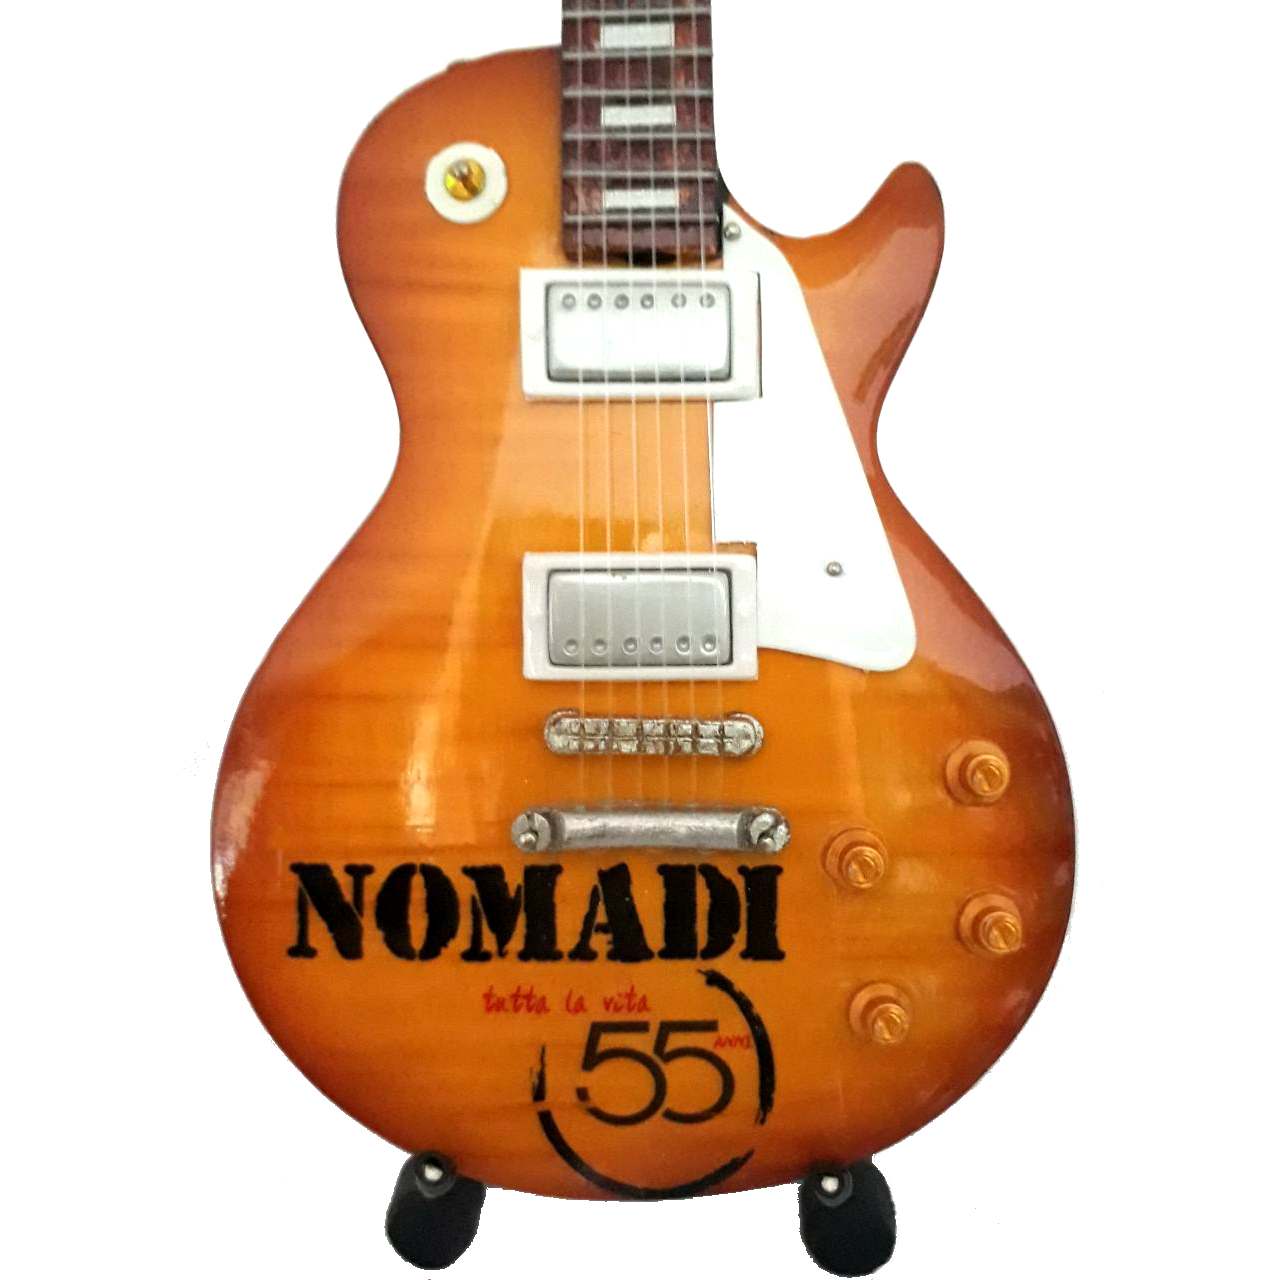 nomadi lespaul 50 years close up